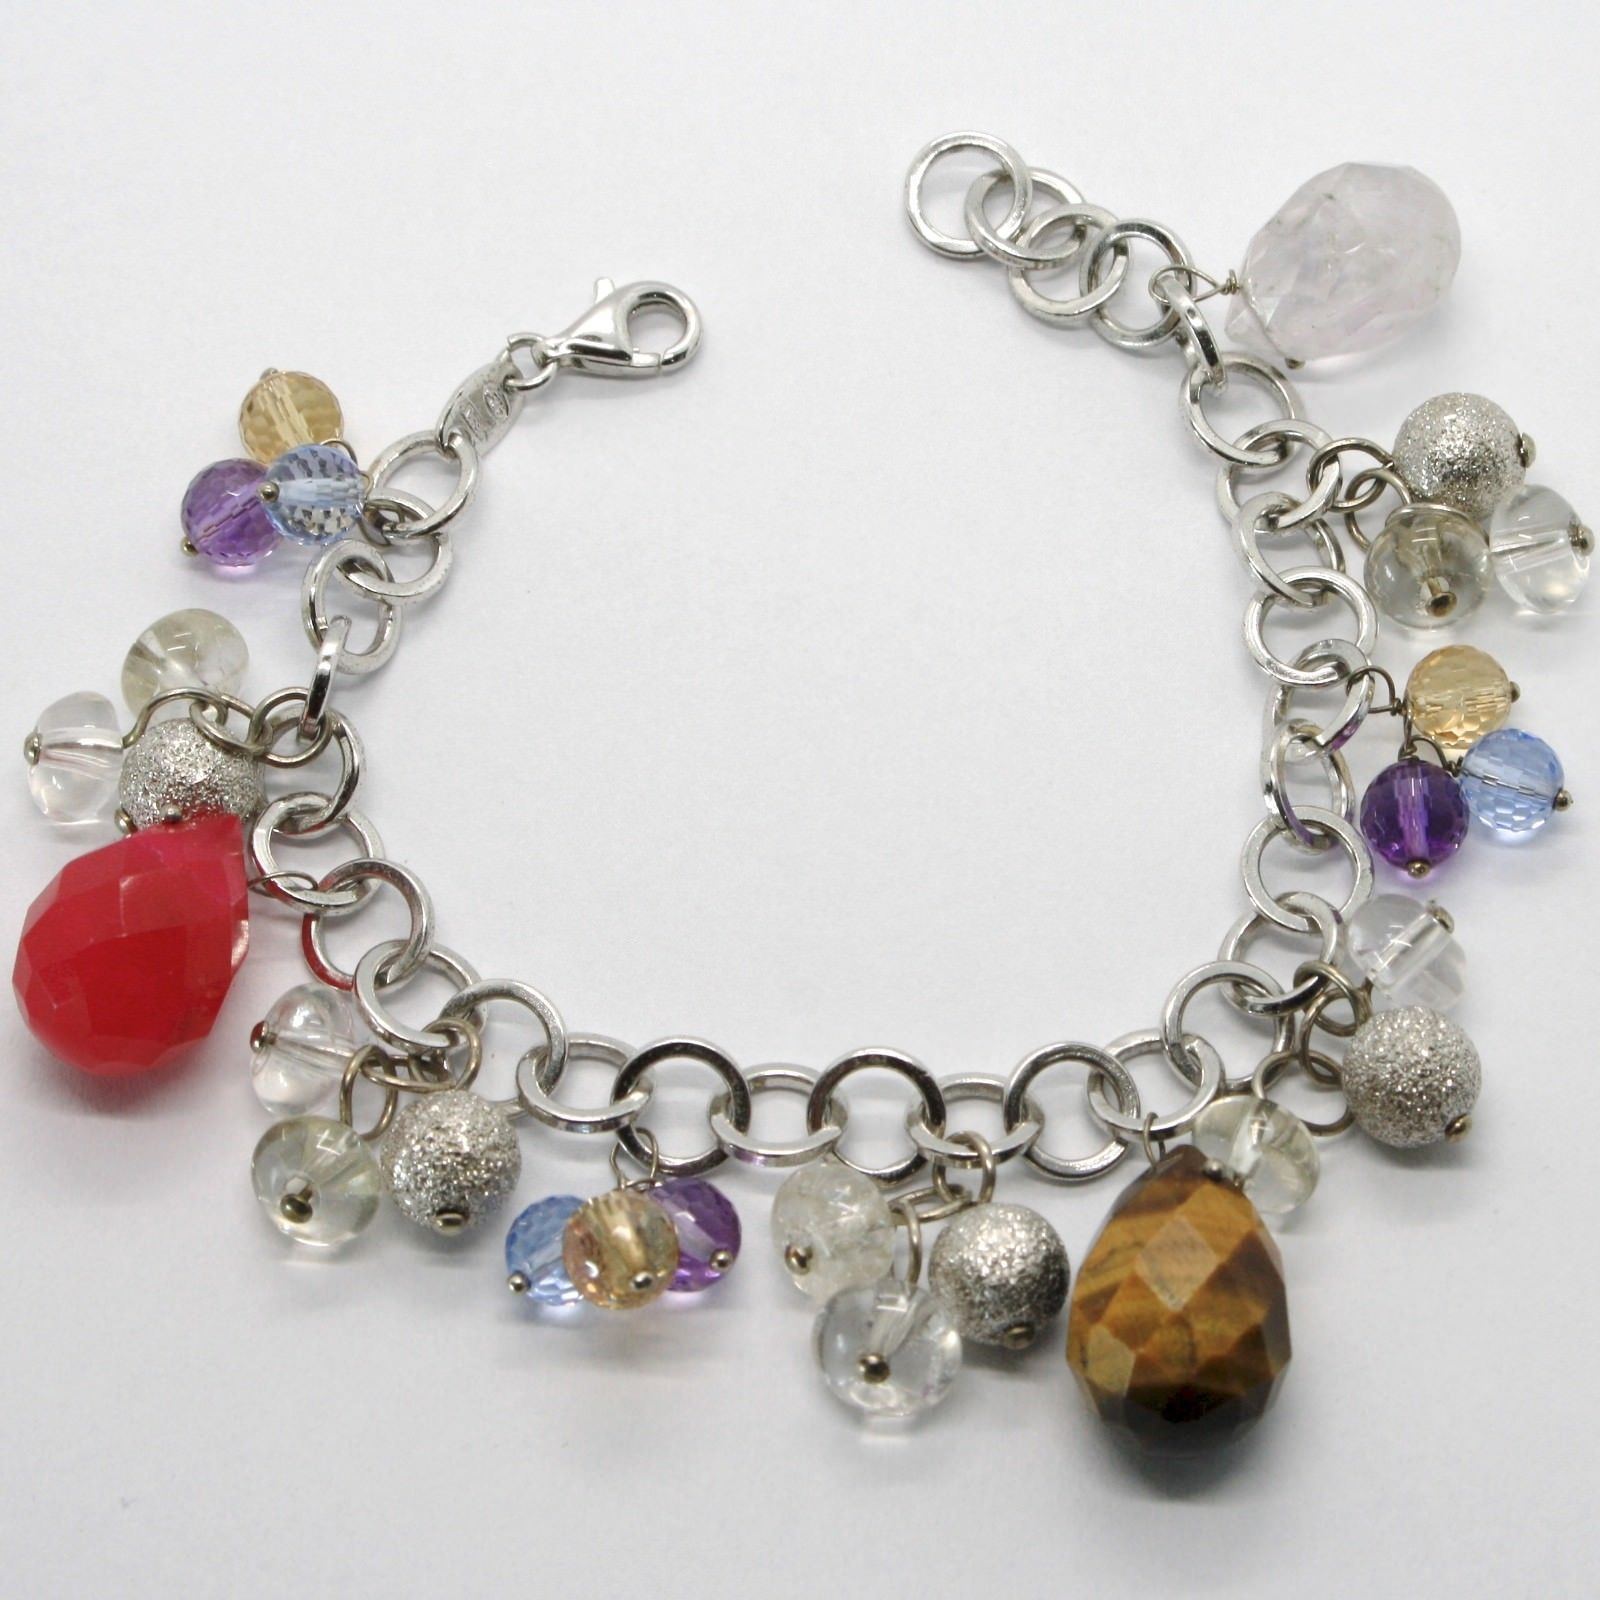 SILVER 925 BRACELET RHODIUM WITH TIGER'S EYE AND QUARTZ MULTICOLOUR